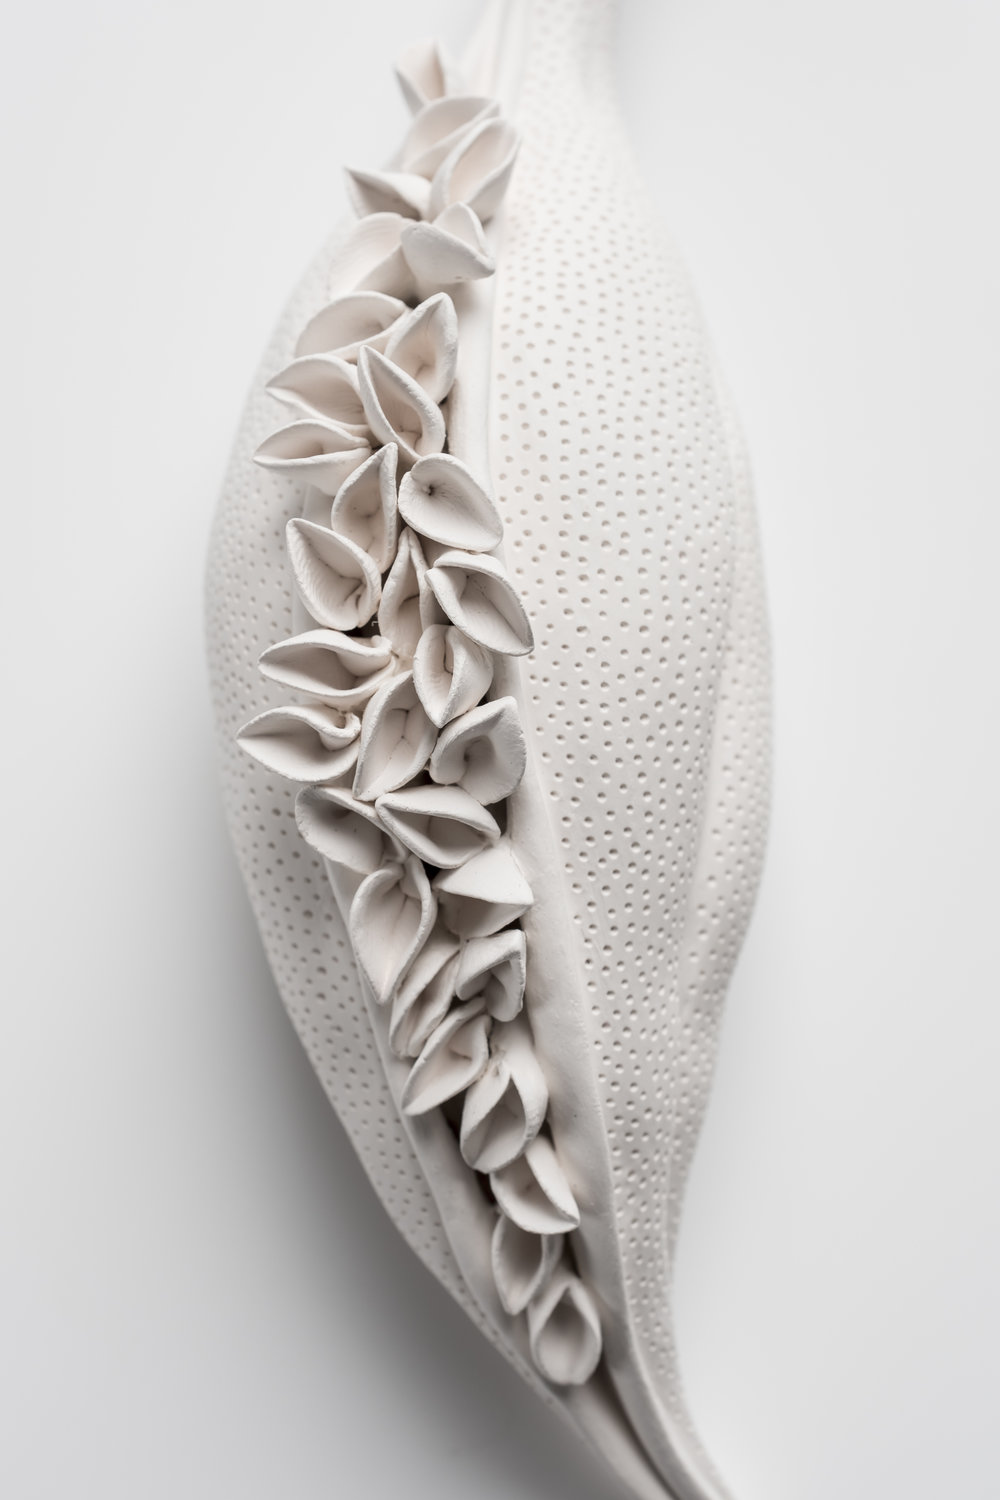 Sarah Rayner,  Listening , 2018, hand carved porcelain, Terra Sigillata, 1000c, detail, Photo: Greg Piper.